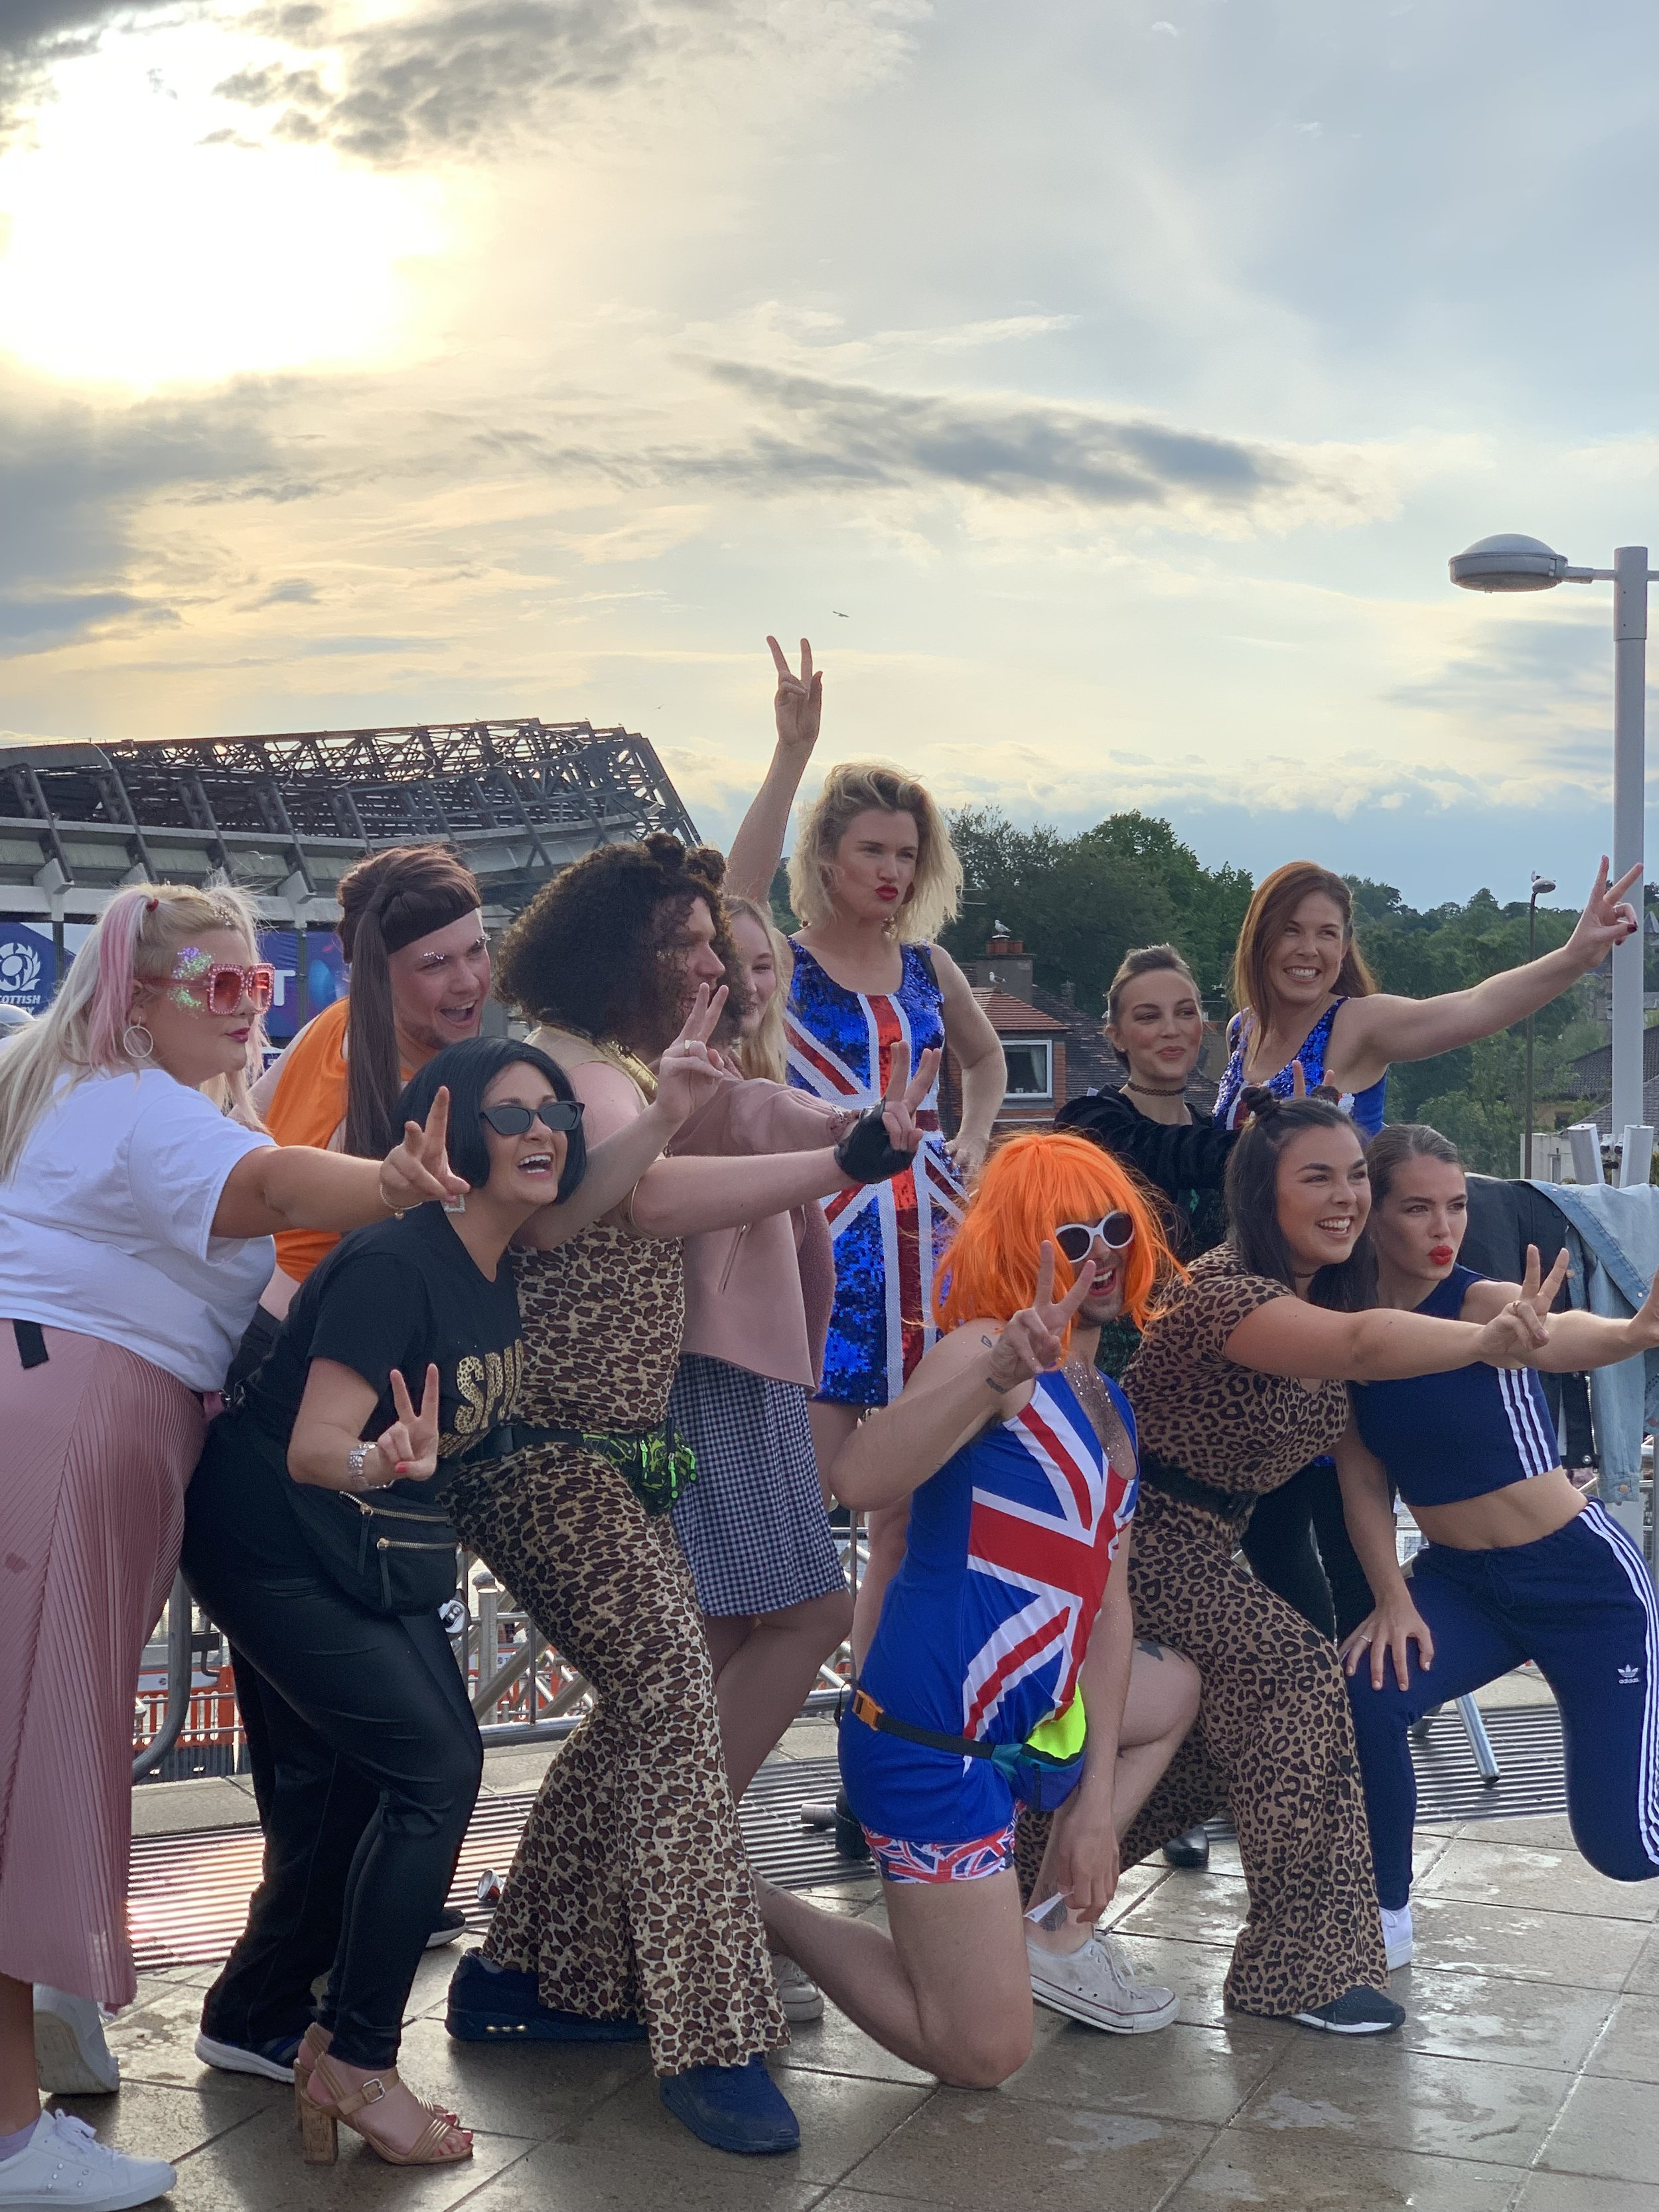 The excitement for the Spice Girls SPICEWORLD Reunion is amazing!